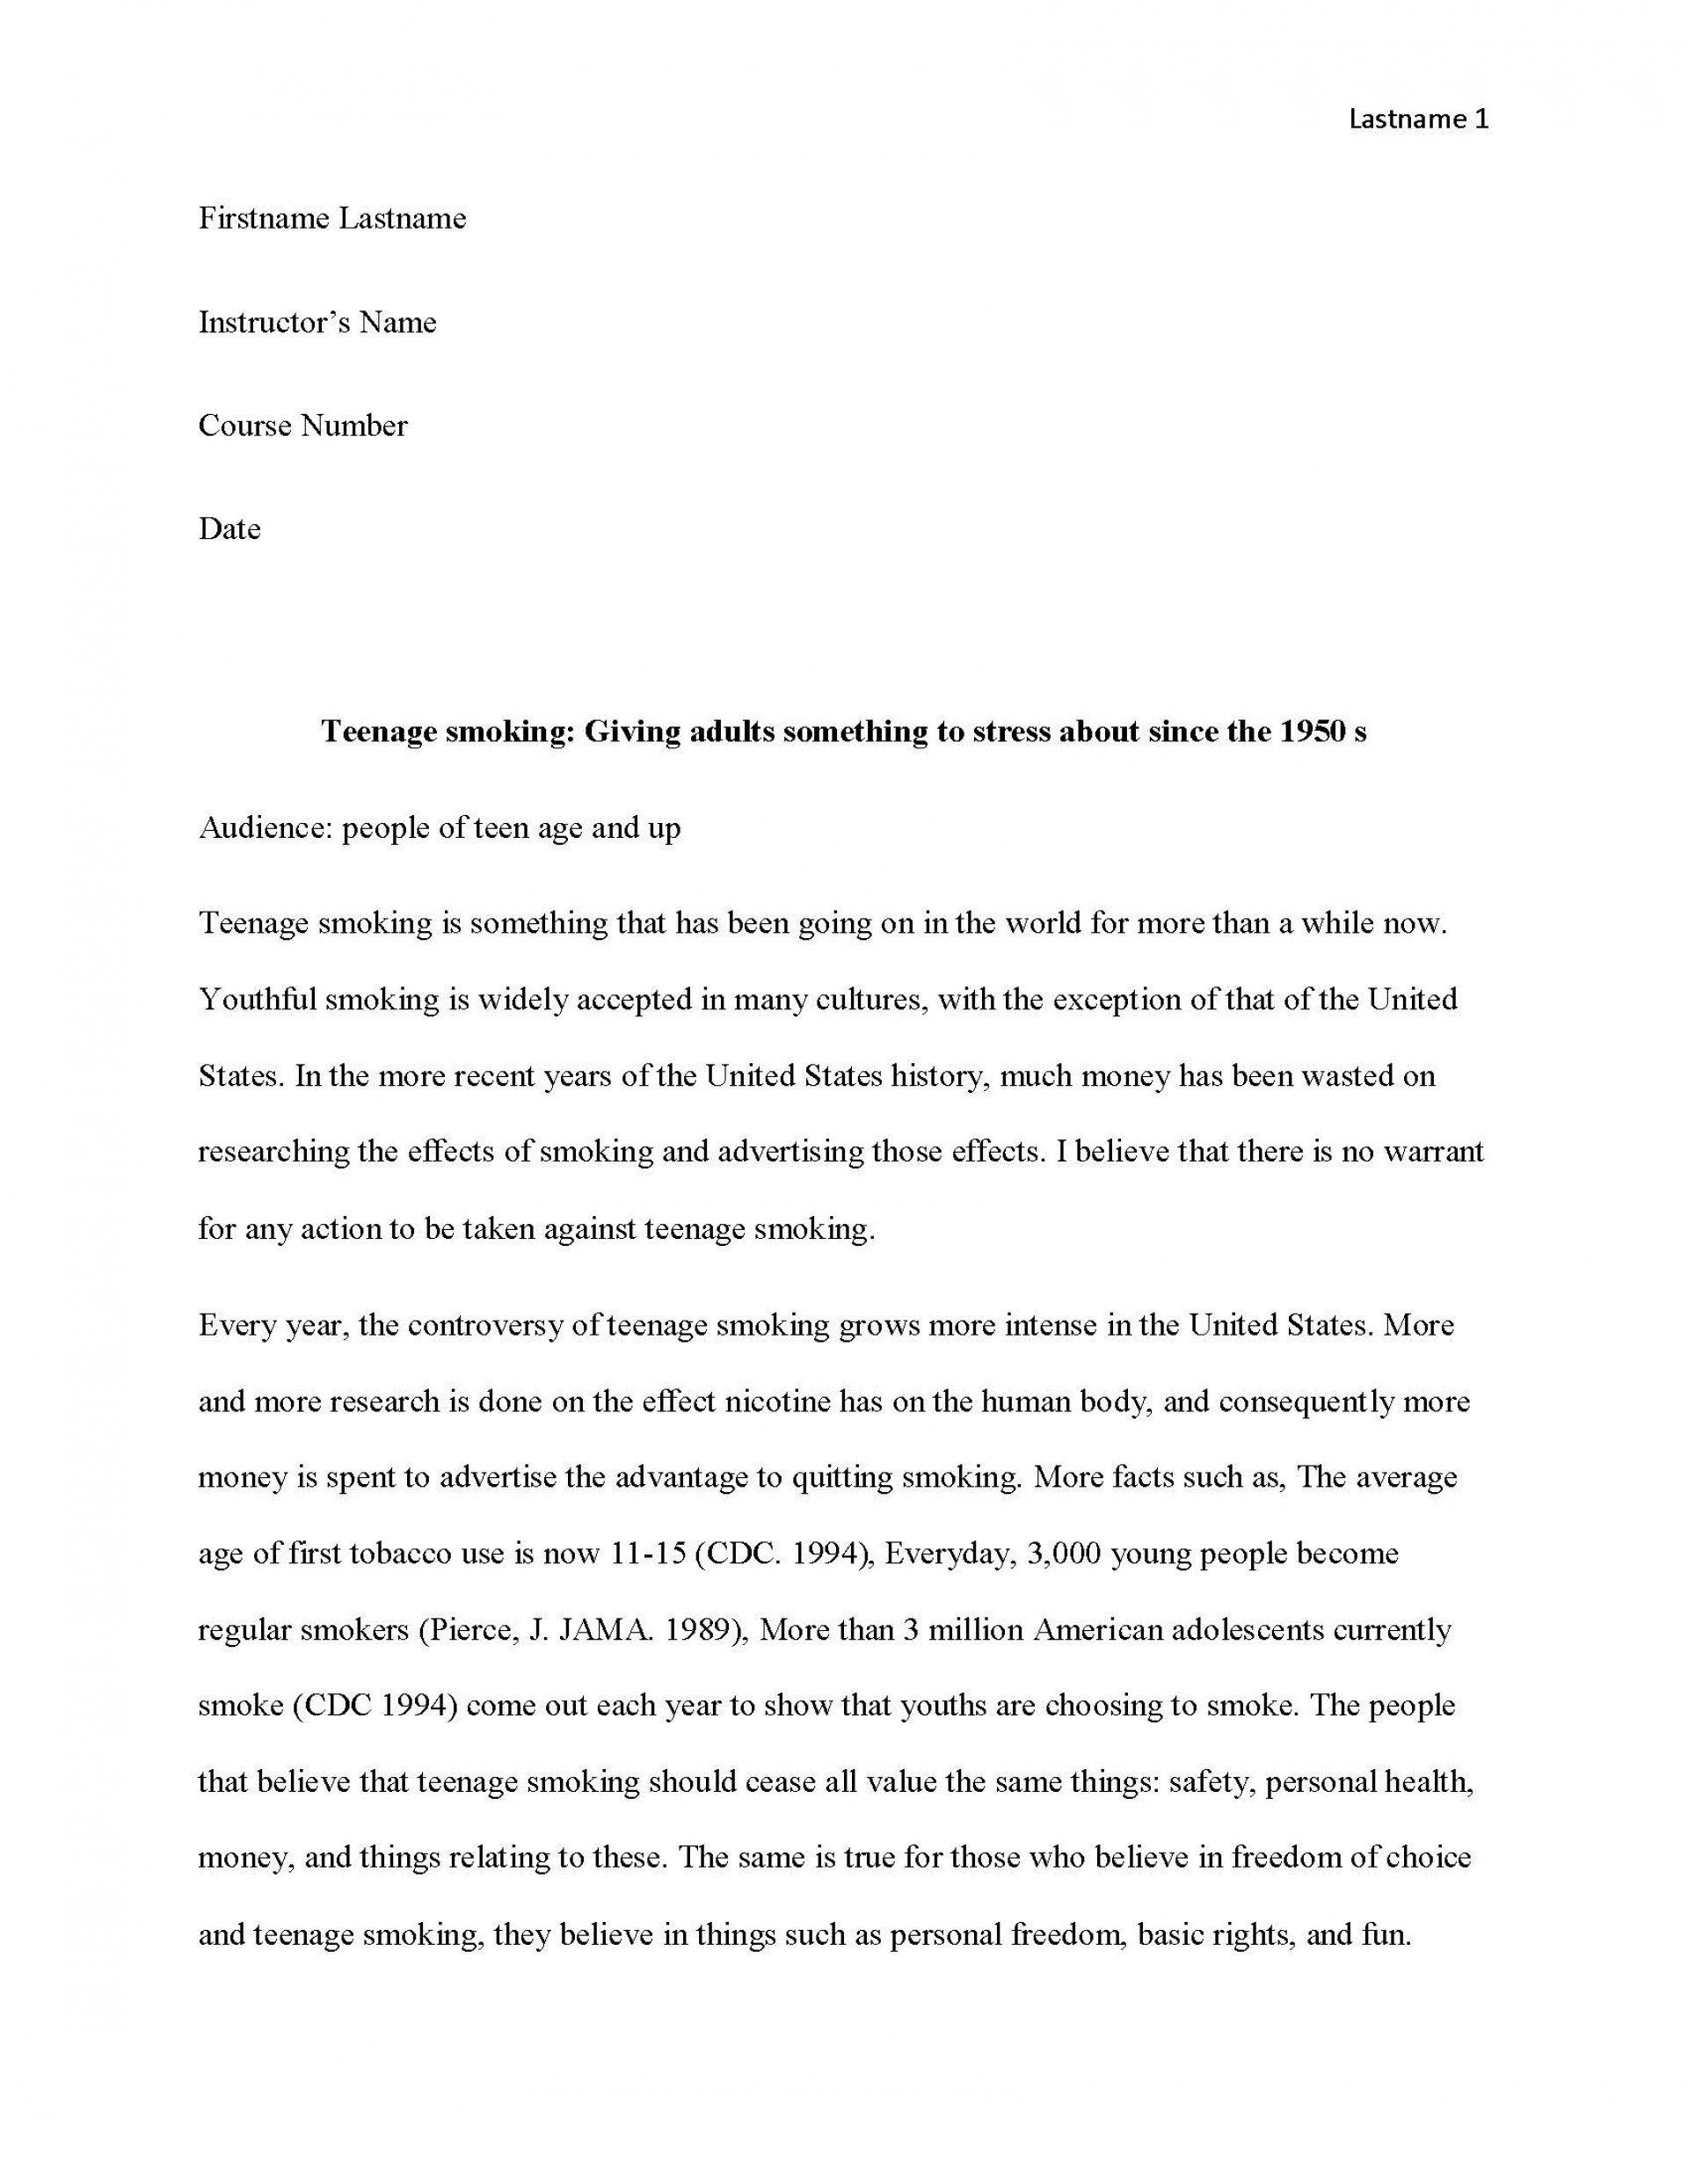 016 Teen Smoking Free Sample Page 1 Narrative Interview Essay Impressive Example Examples 1920